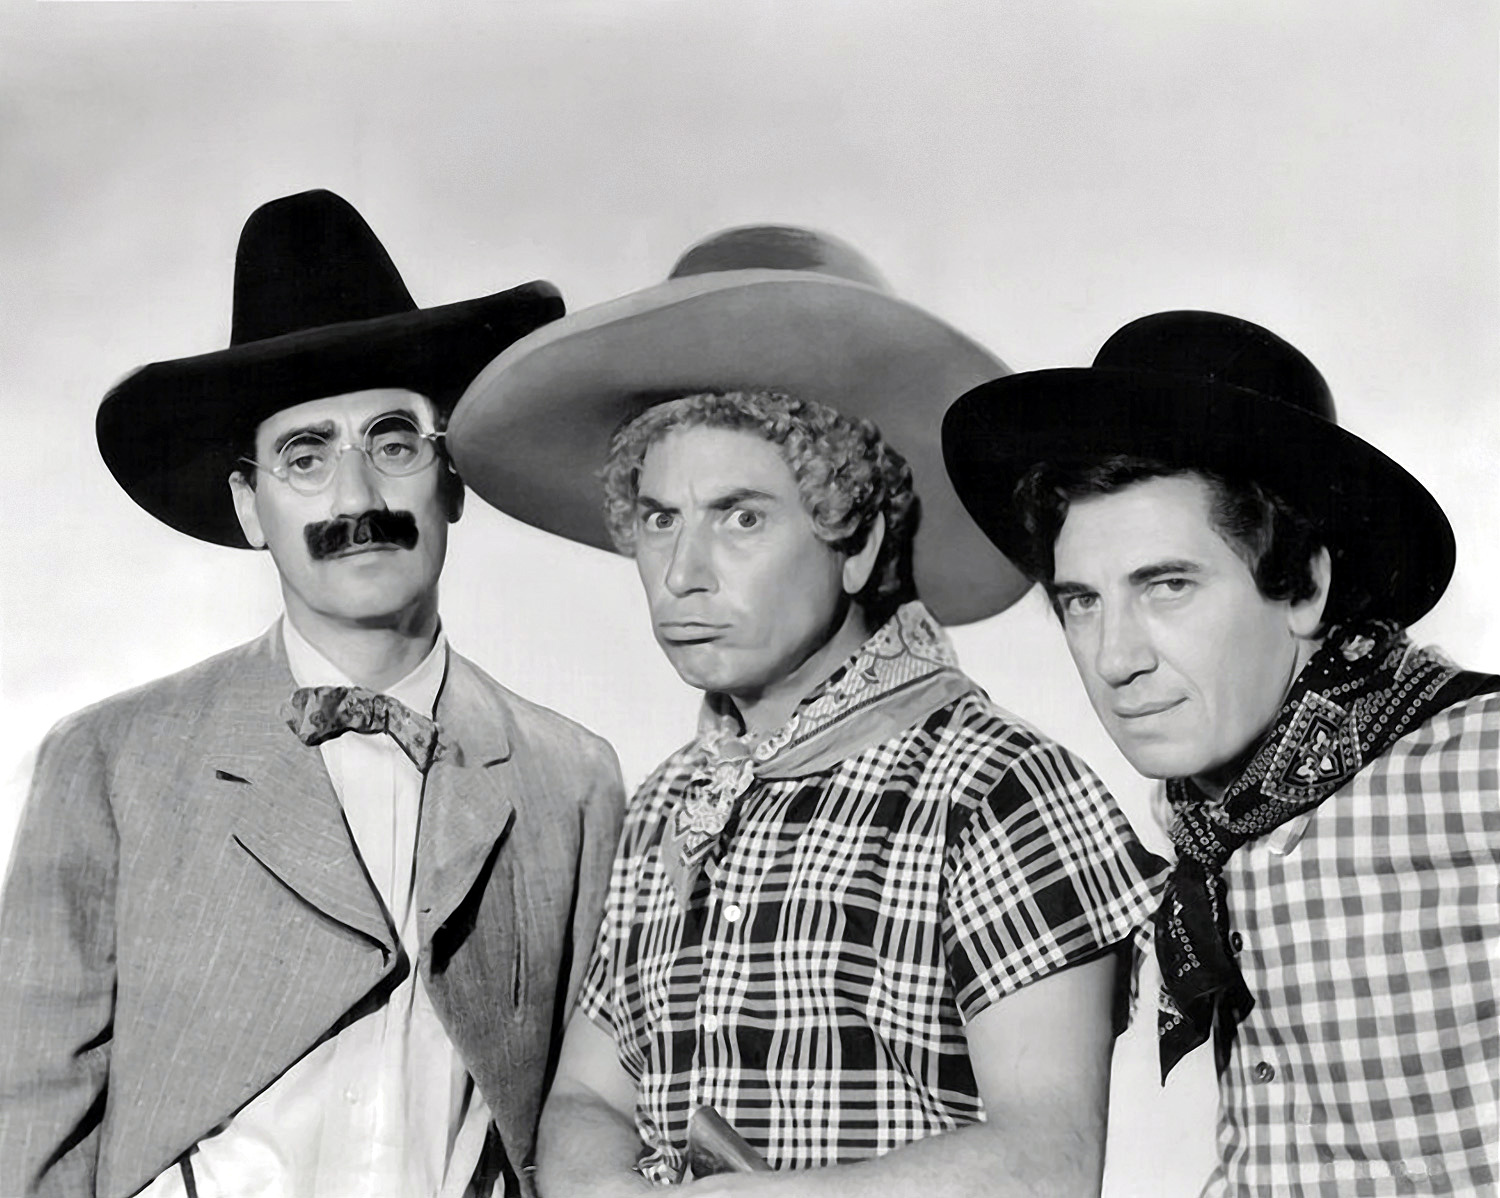 Go-West-1-marx-brothers-17802970-1500-1198